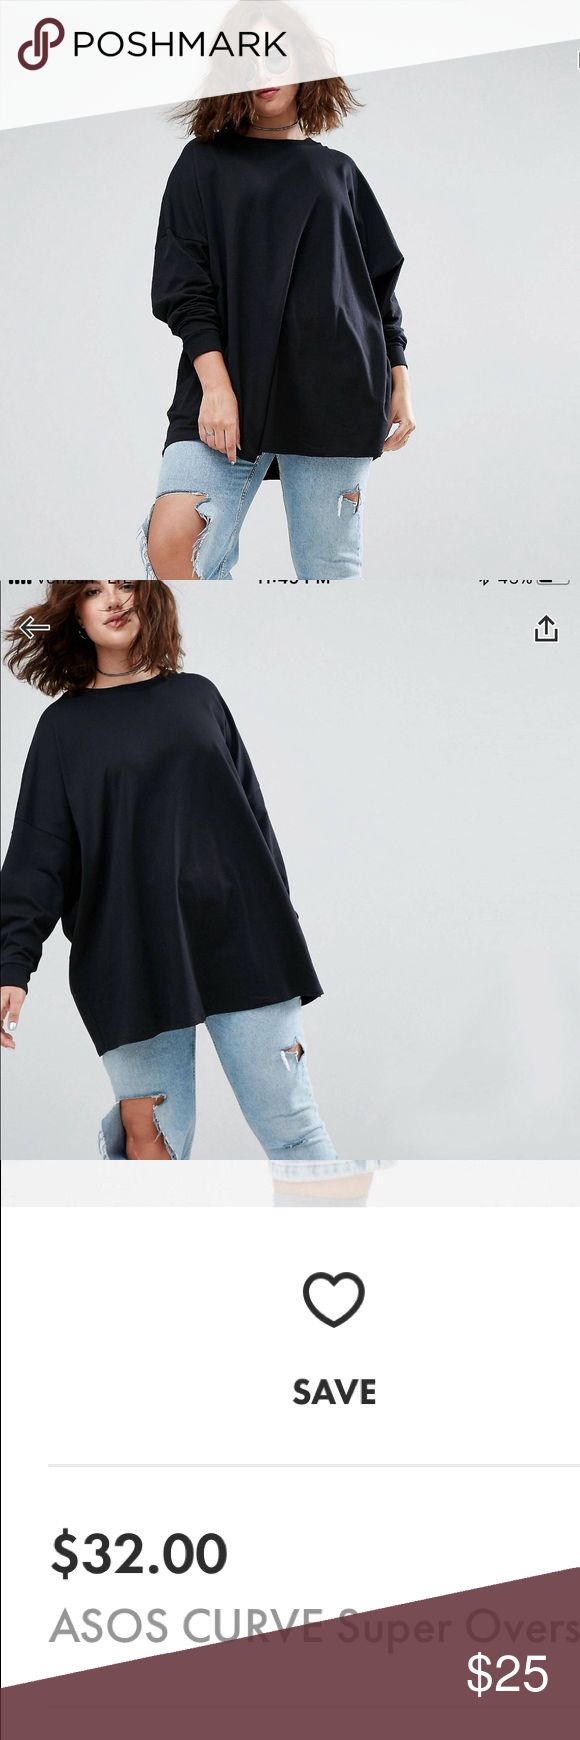 ASOS Curve oversized sweatshirt New with tags. Kept in smoke free home. Bundle for savings! 💕 ASOS Curve Tops Sweatshirts & Hoodies